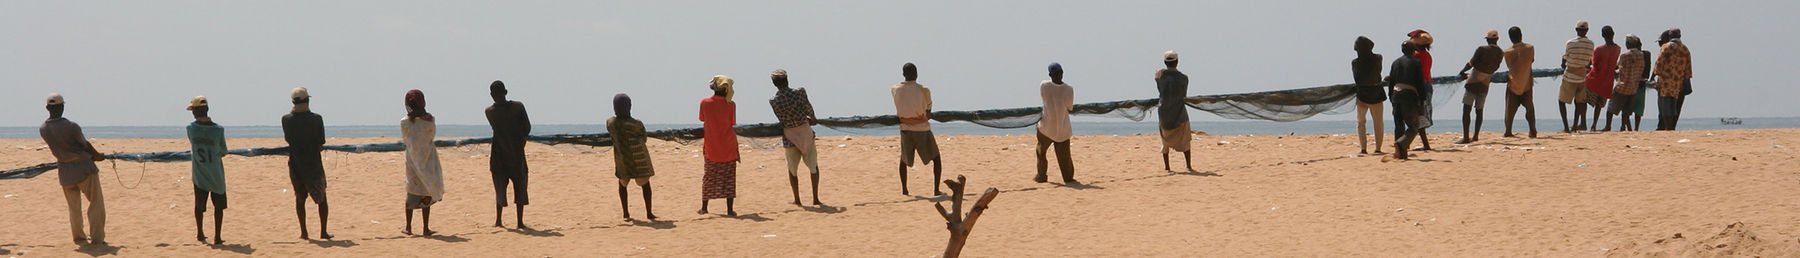 Togo banner Fishermen with net.jpg